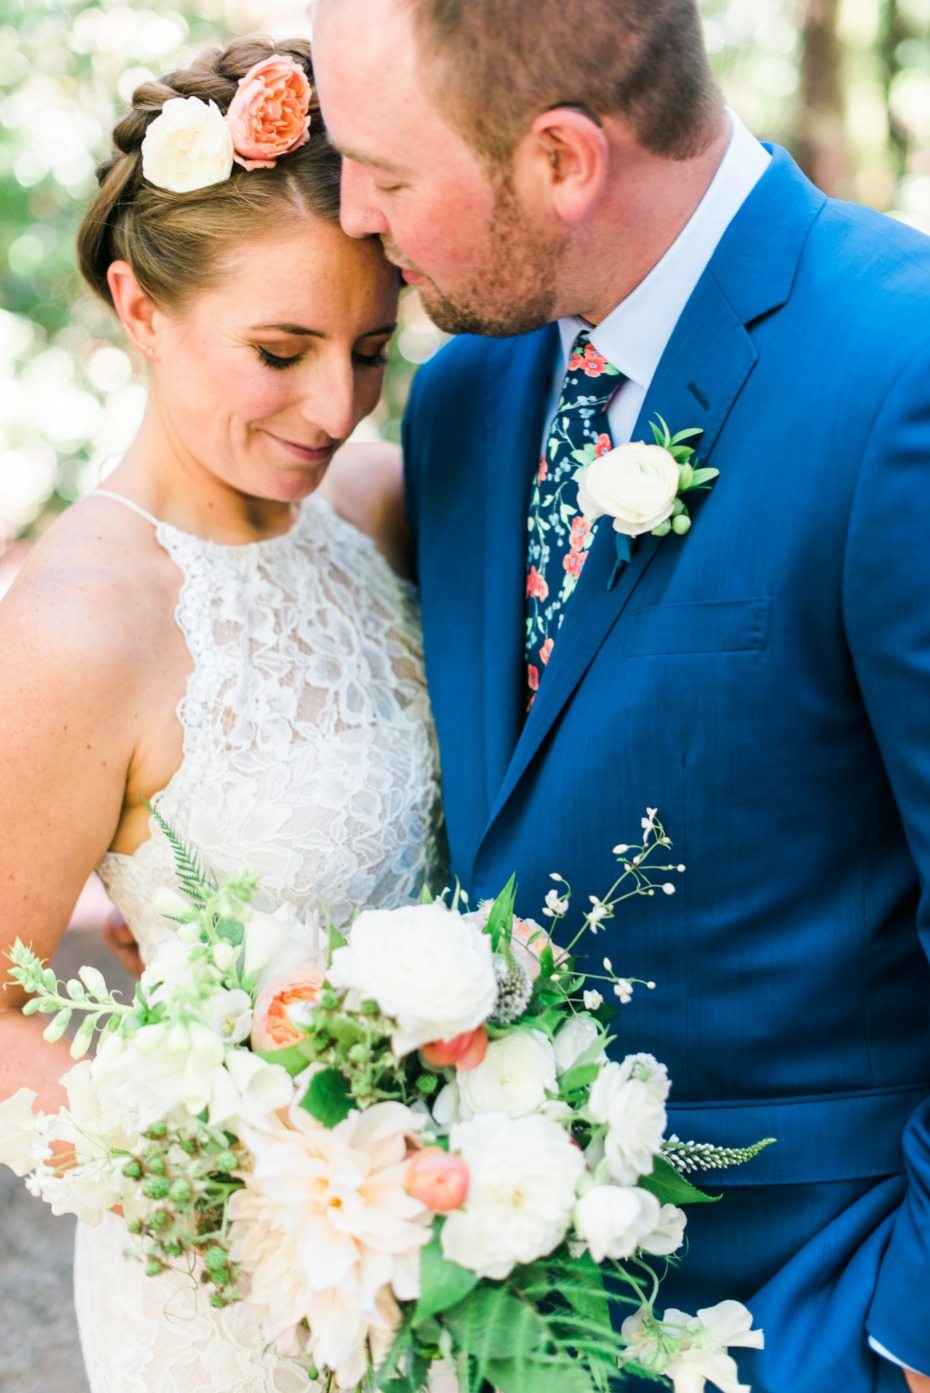 boho bride and groom in fun and funky style for their boho garden chic wedding